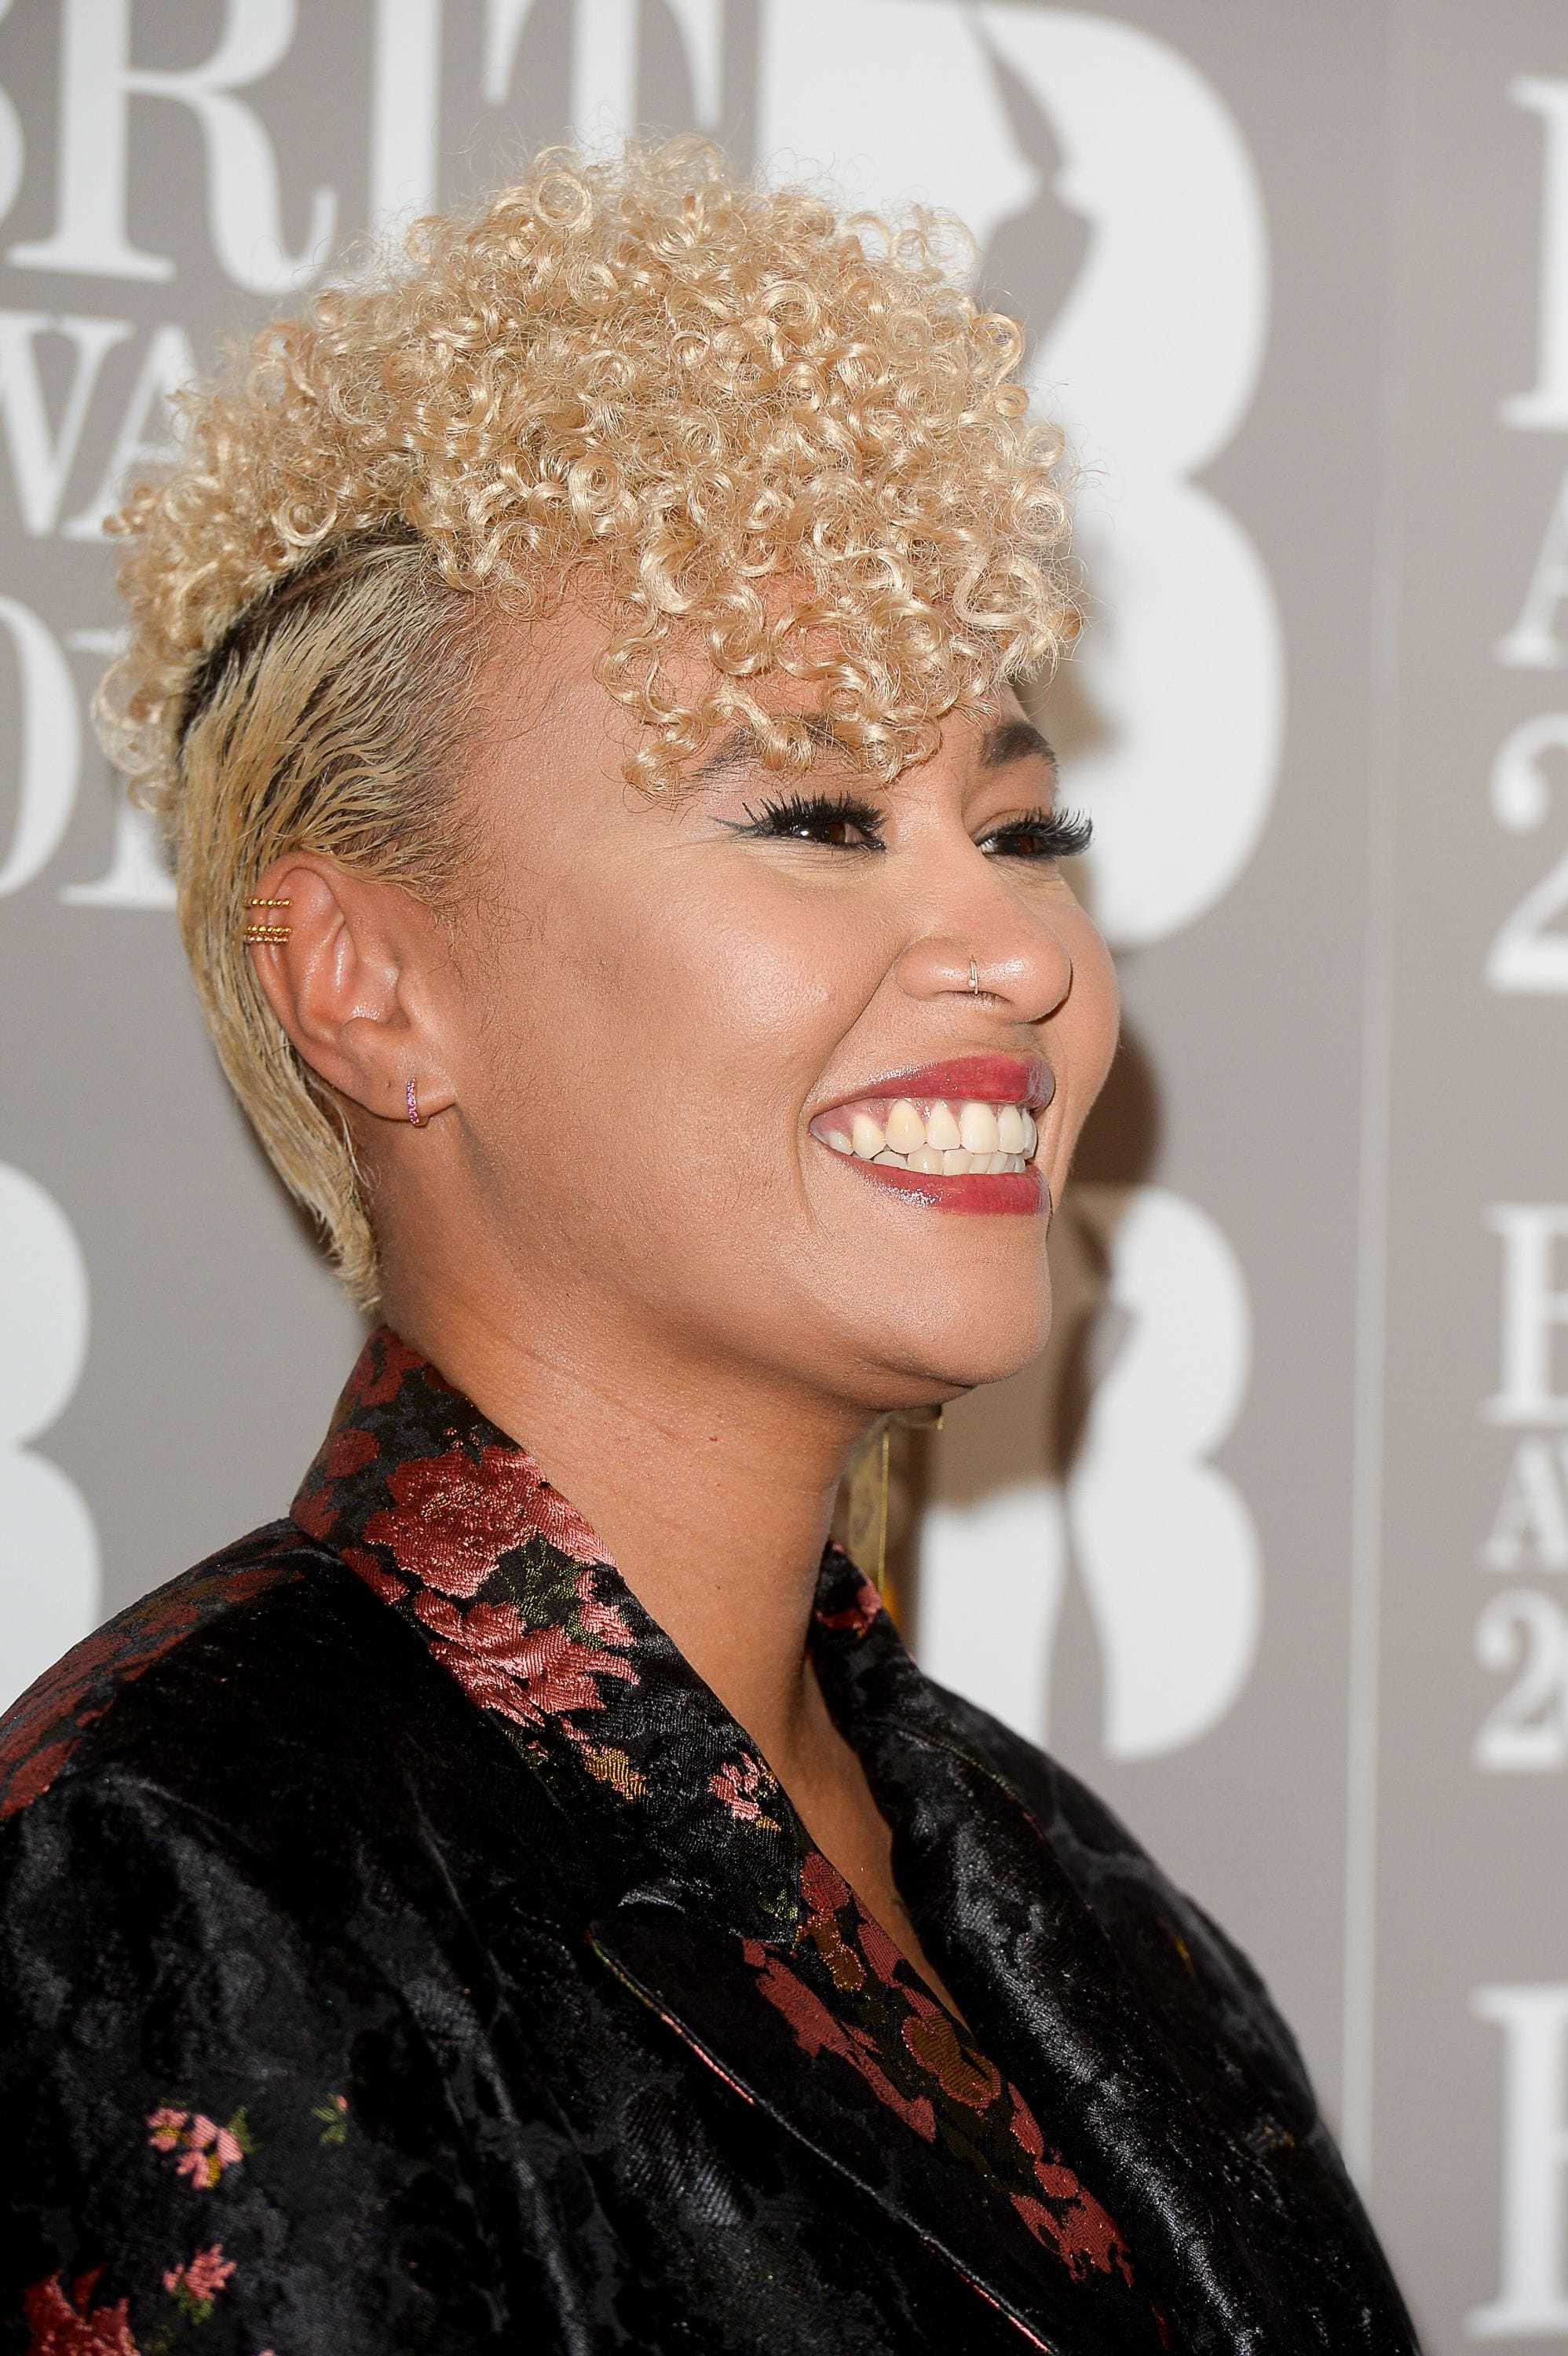 close up shot of Emeli Sande curly fauxhawk hairstyle, wearing black and floral suit and posing on the brit awards 2017 red carpet